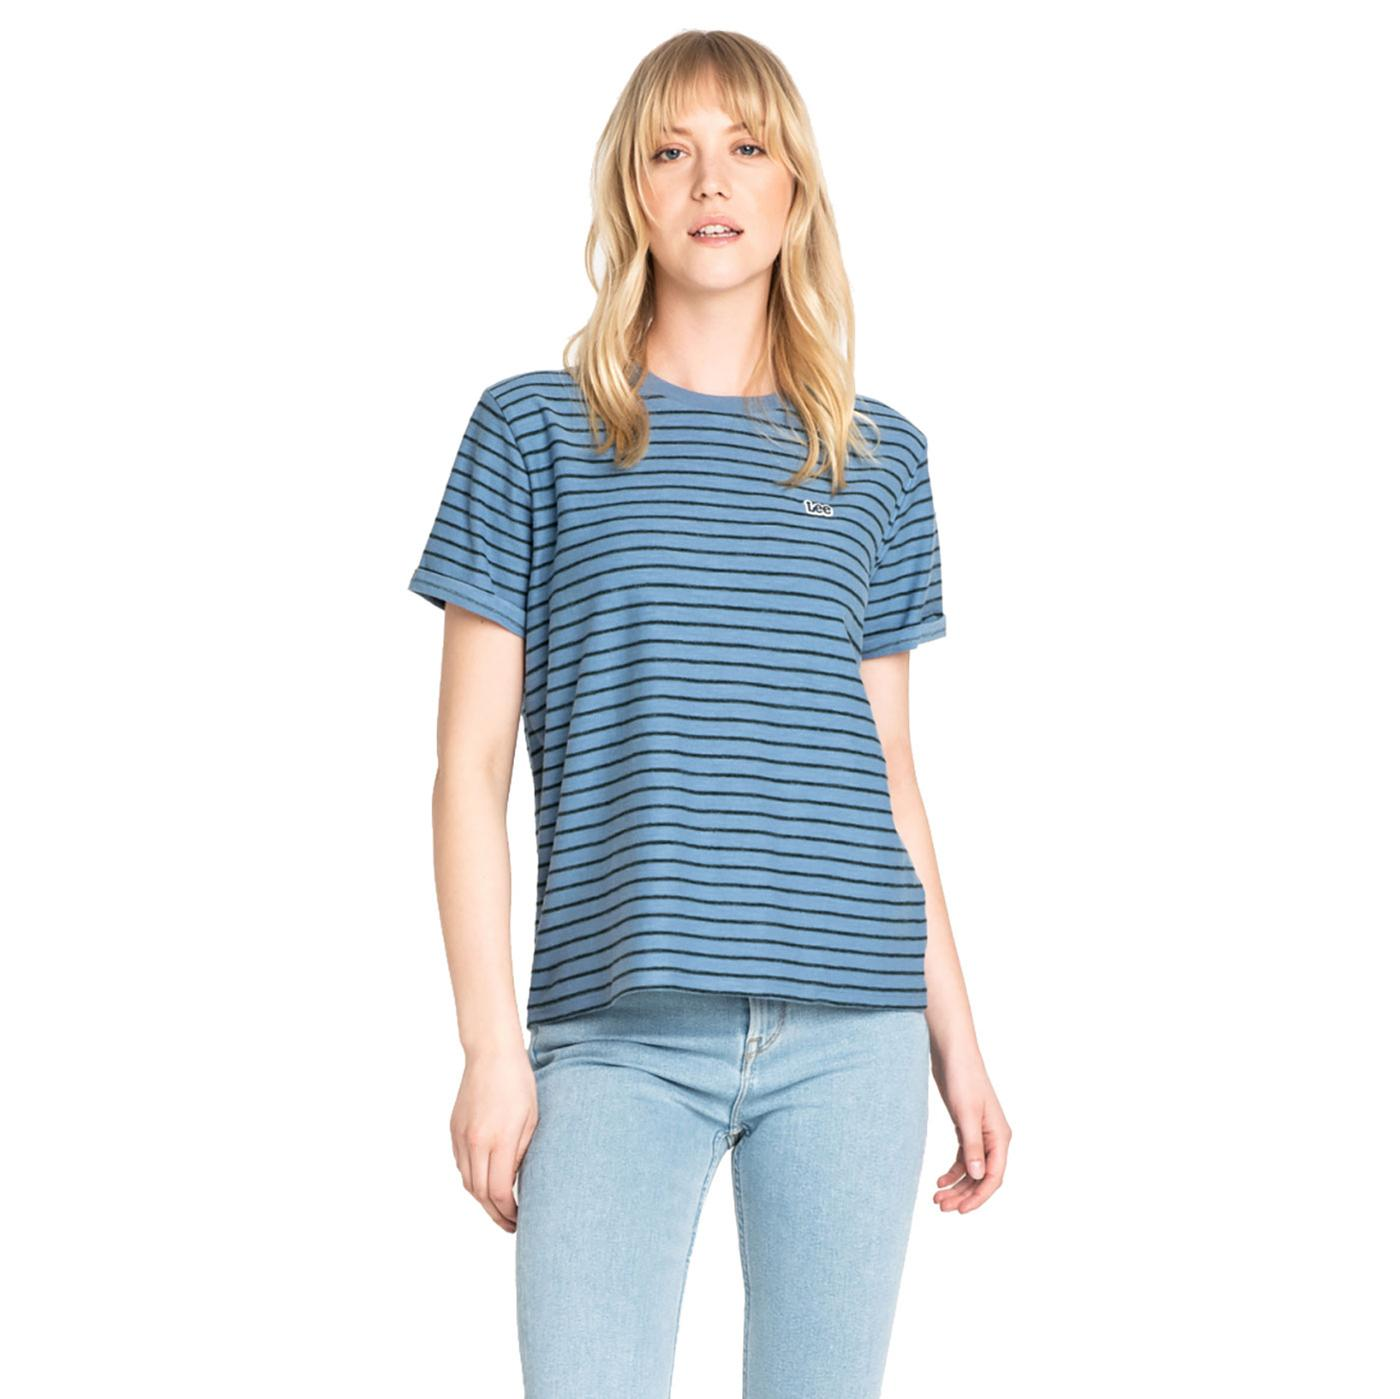 LEE JEANS Womens Relaxed Fit Horizontal Stripe Tee